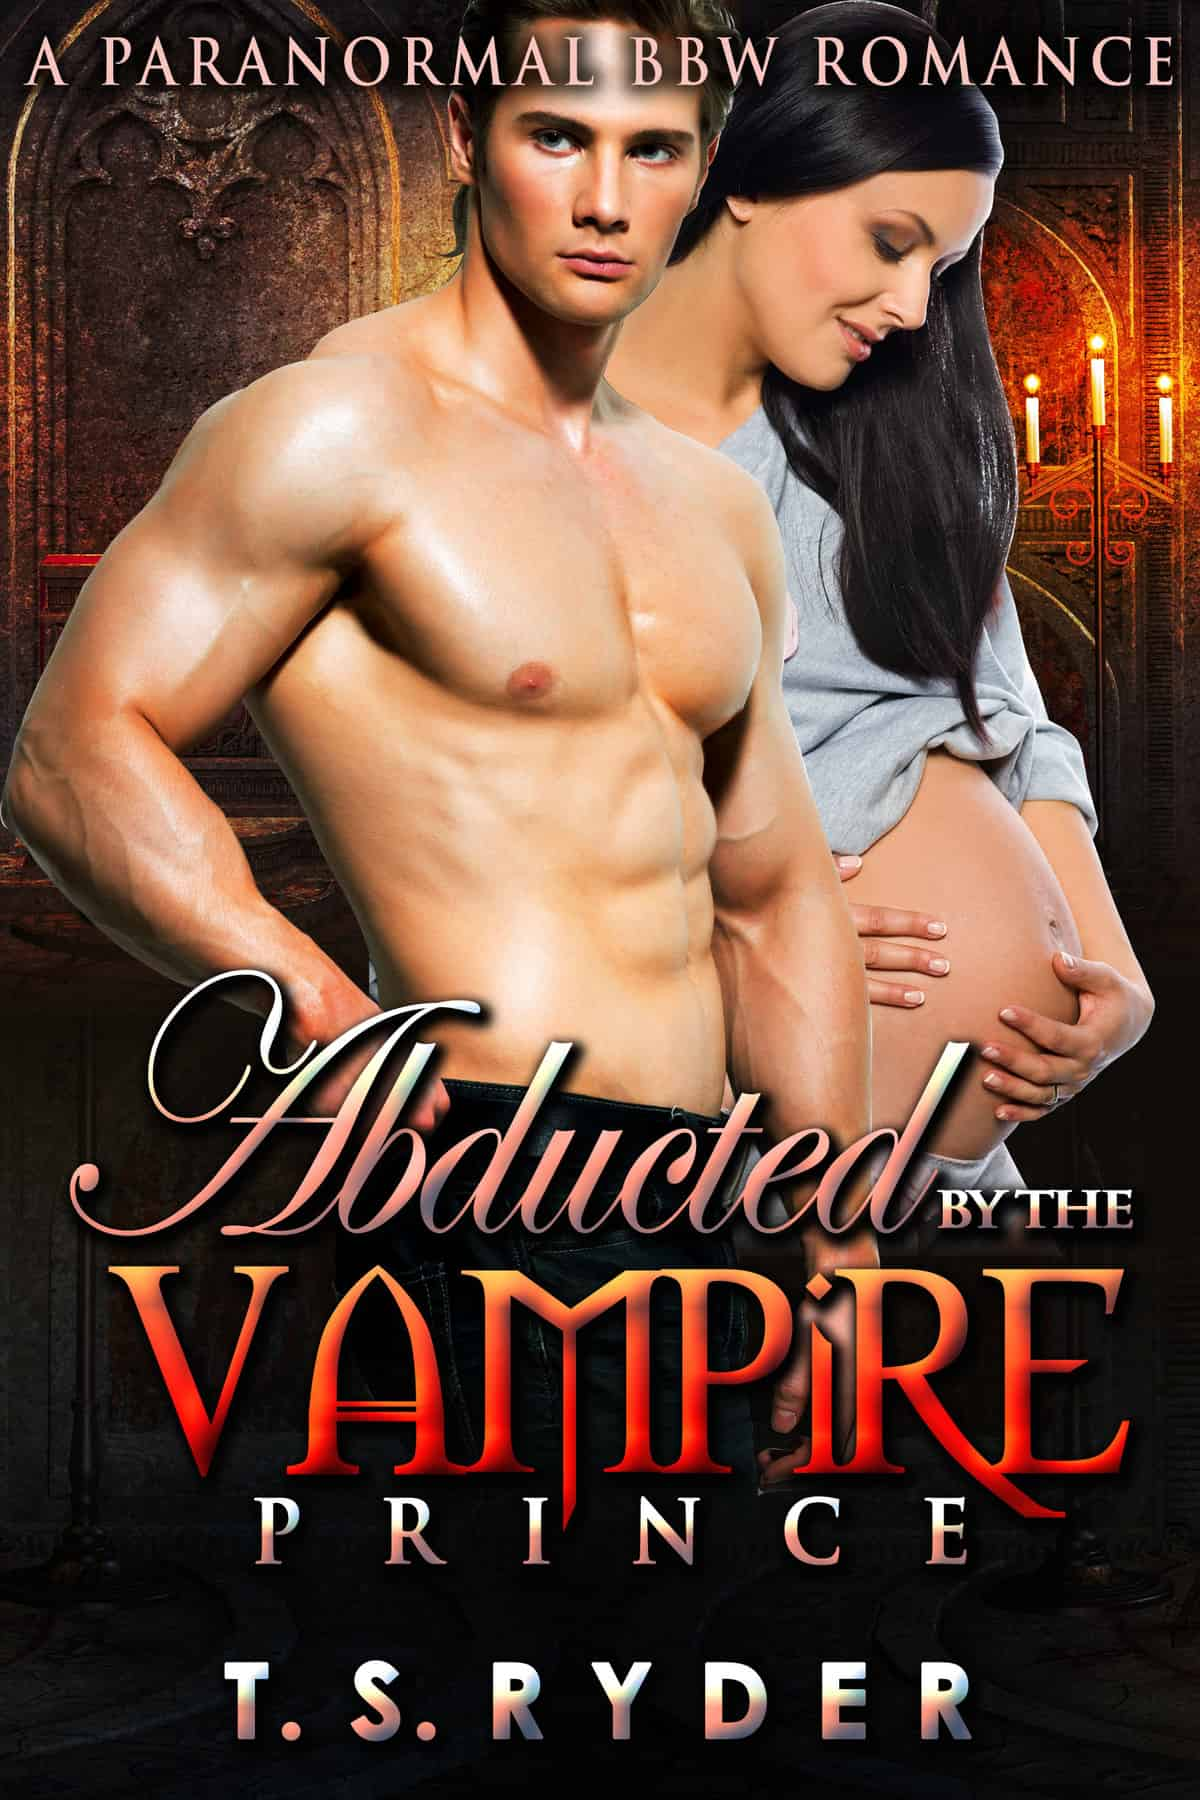 Young adult vampire romance, nude girls getting creeped